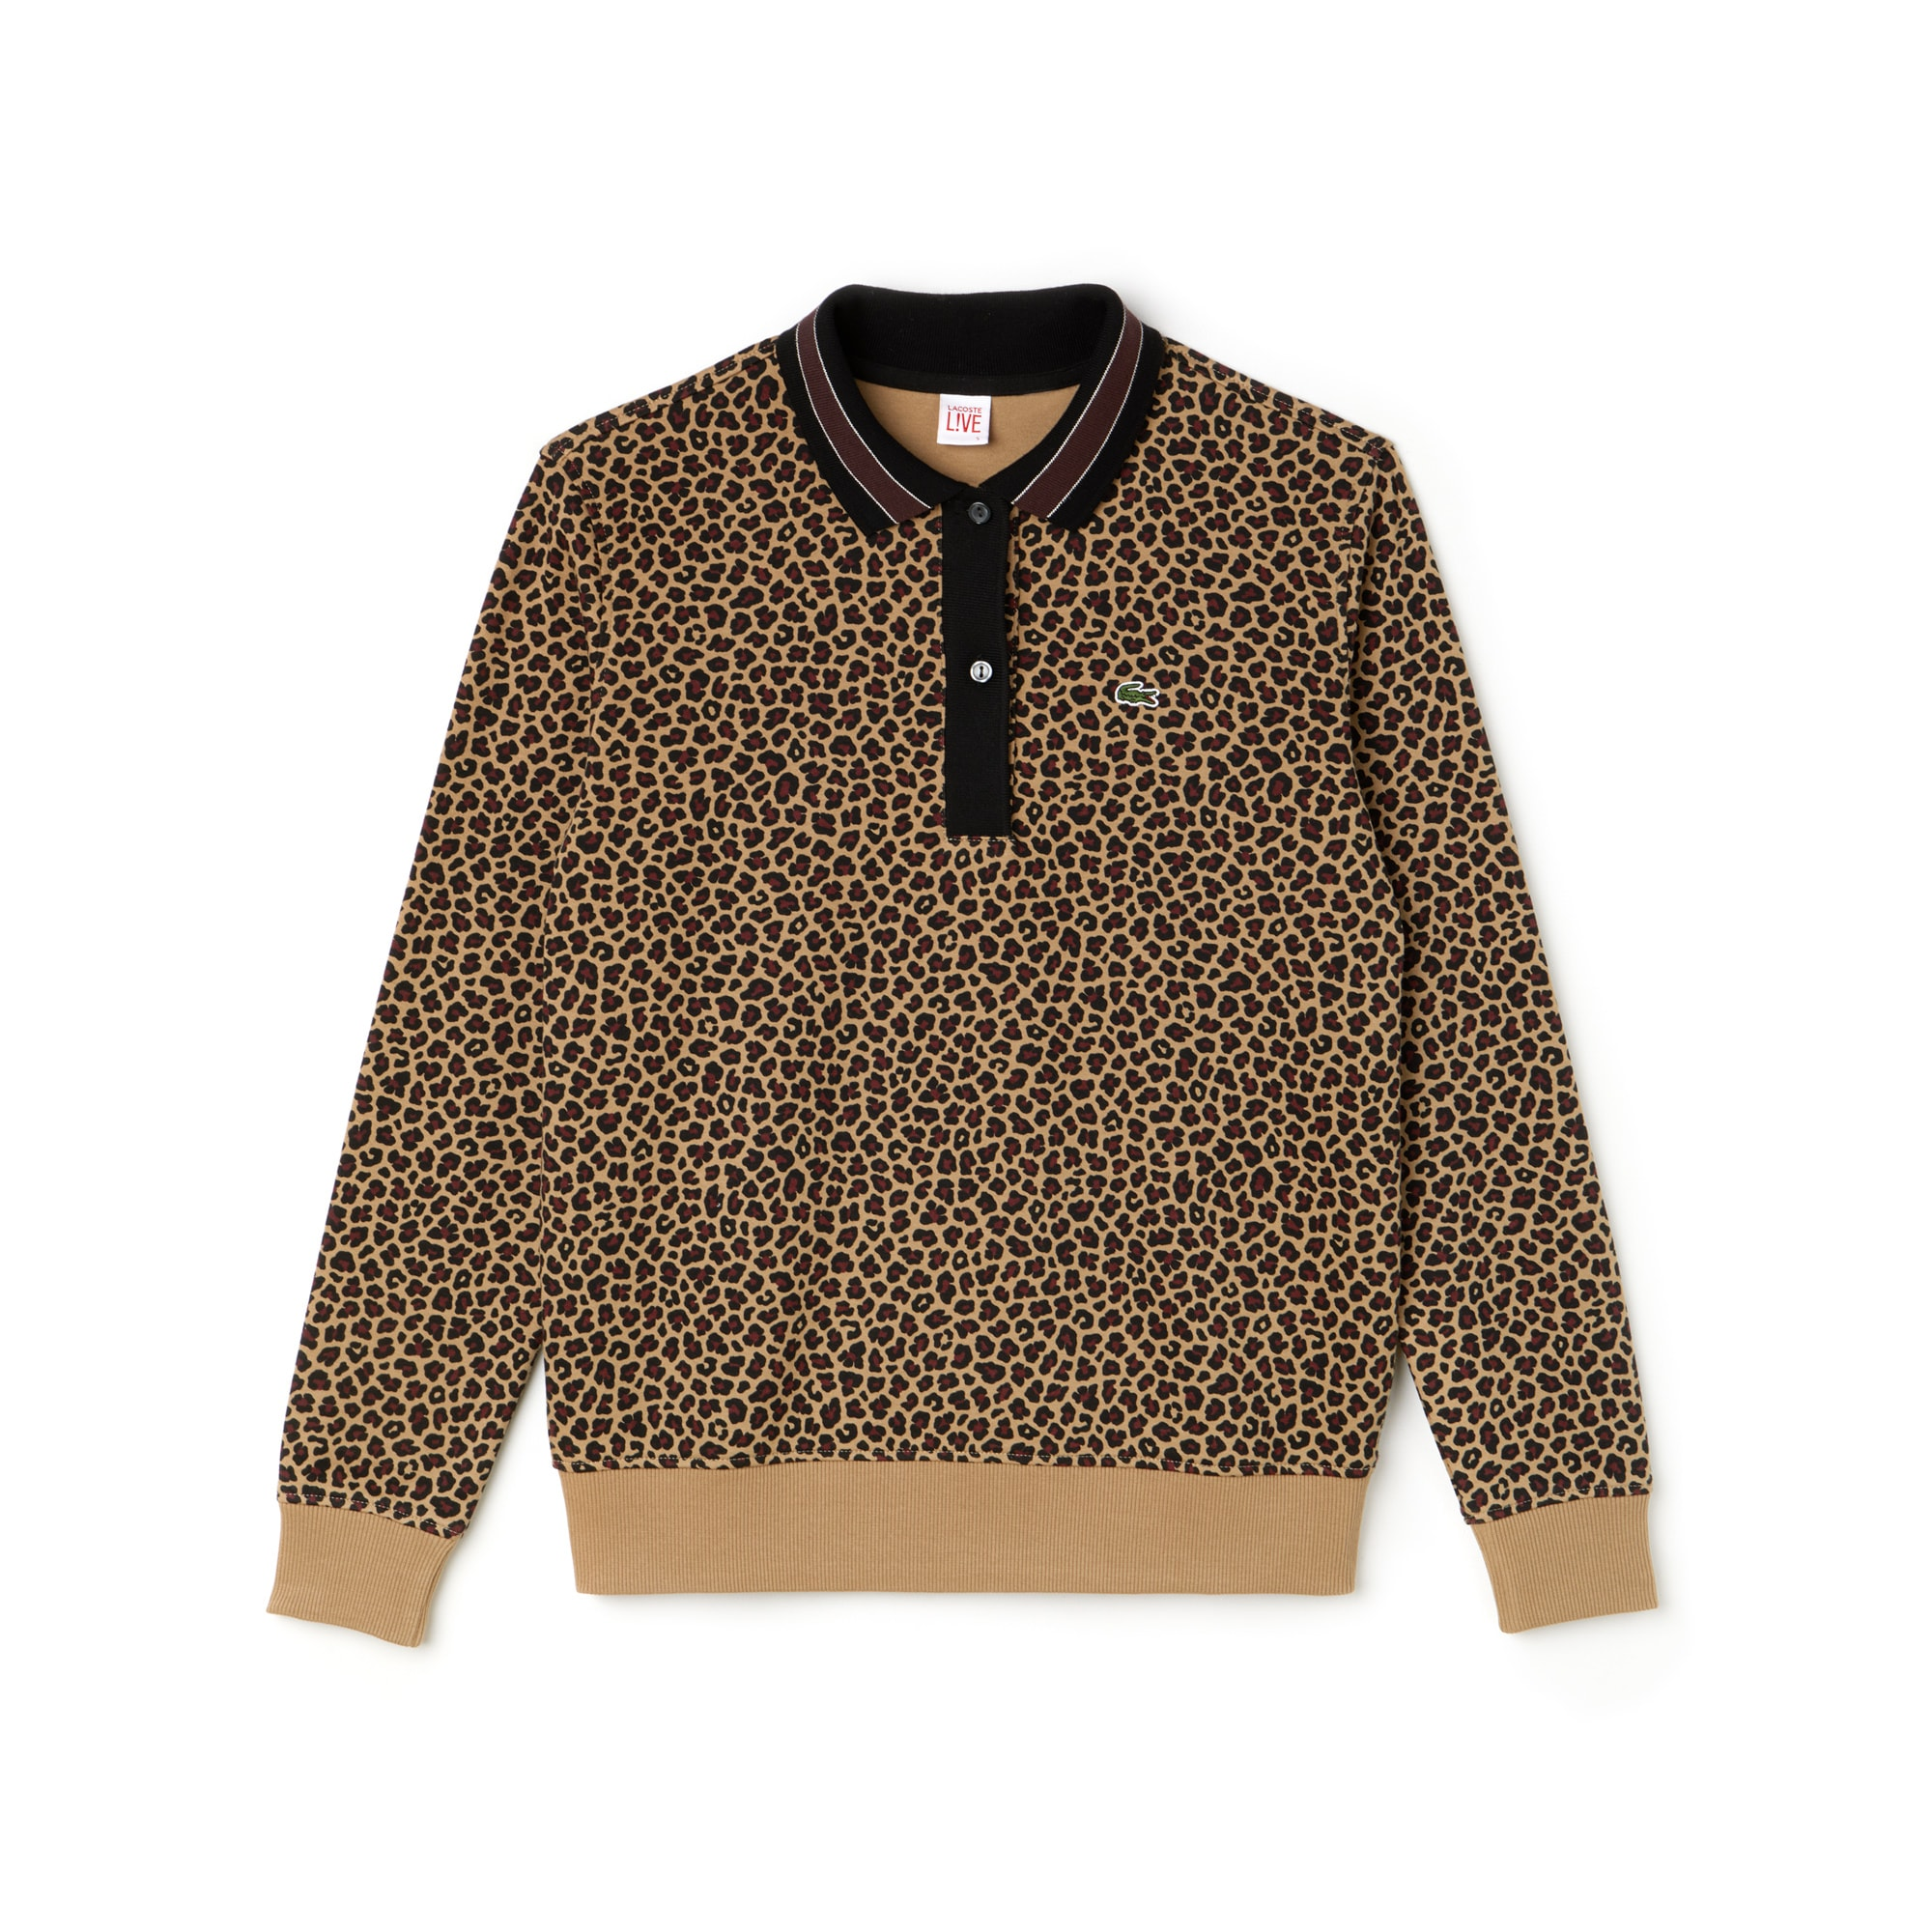 Women's Lacoste LIVE Boxy Fit Leopard Print Cotton Interlock Polo